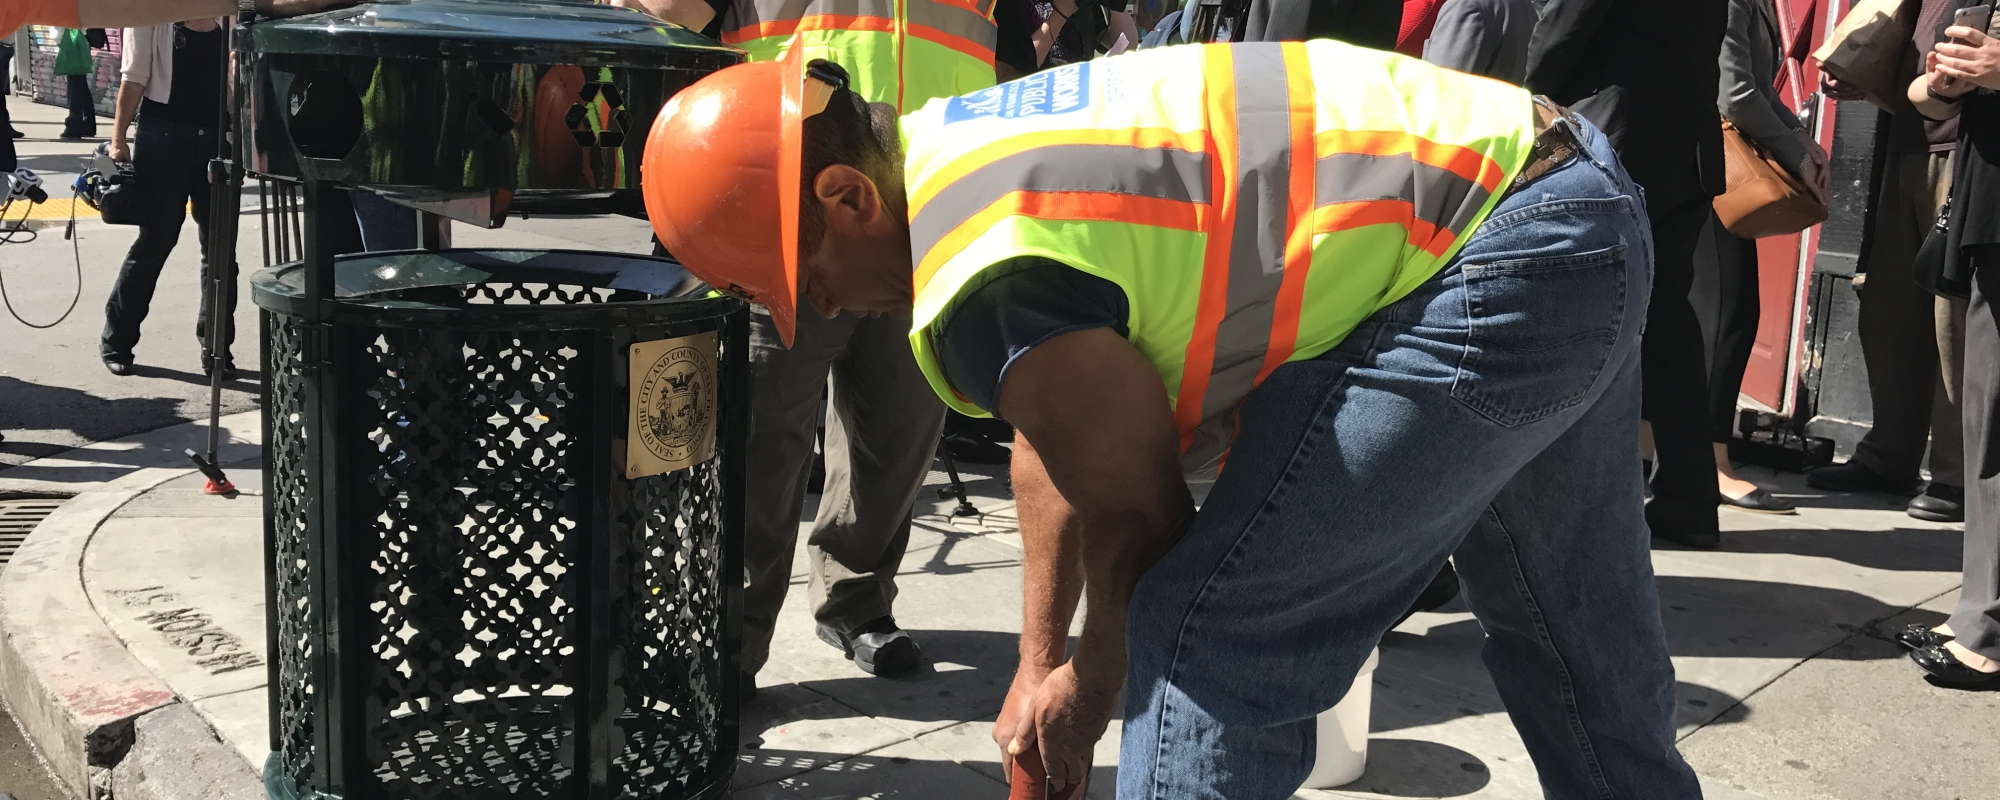 Public Works Staff cleaning up litter